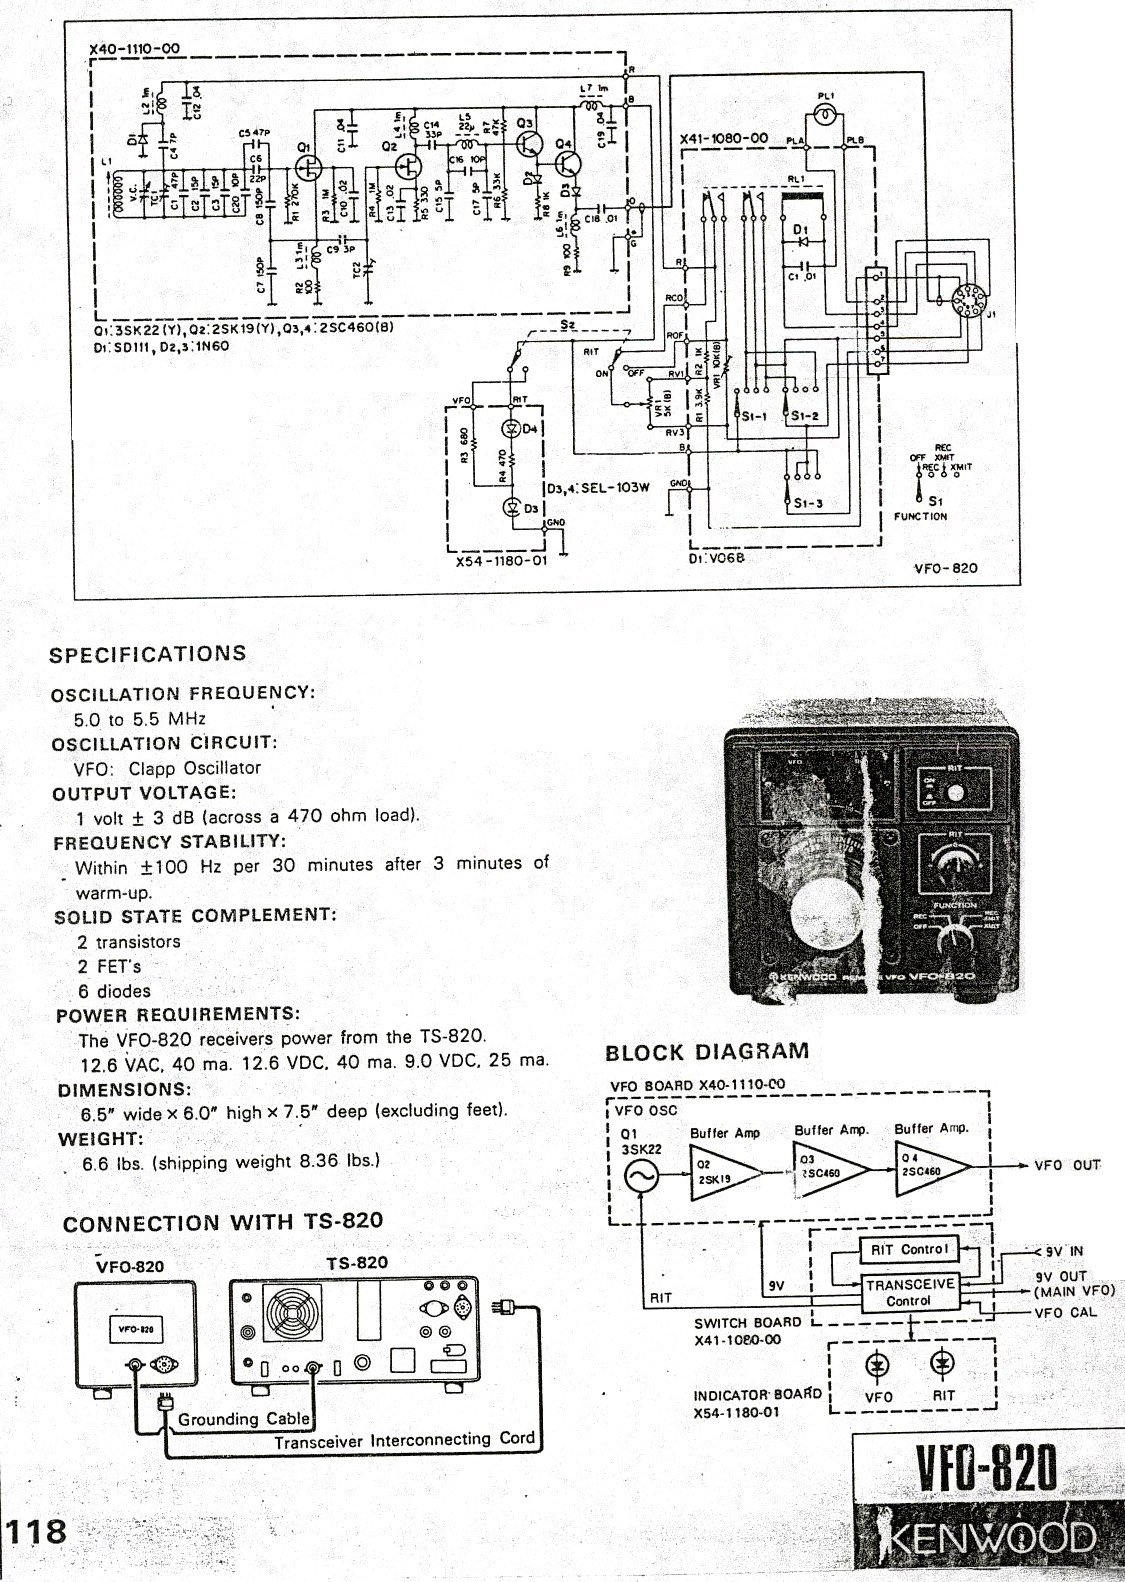 kenwood mc 50 wiring diagram auto electrical wiring diagramkenwood mc 50 wiring diagram